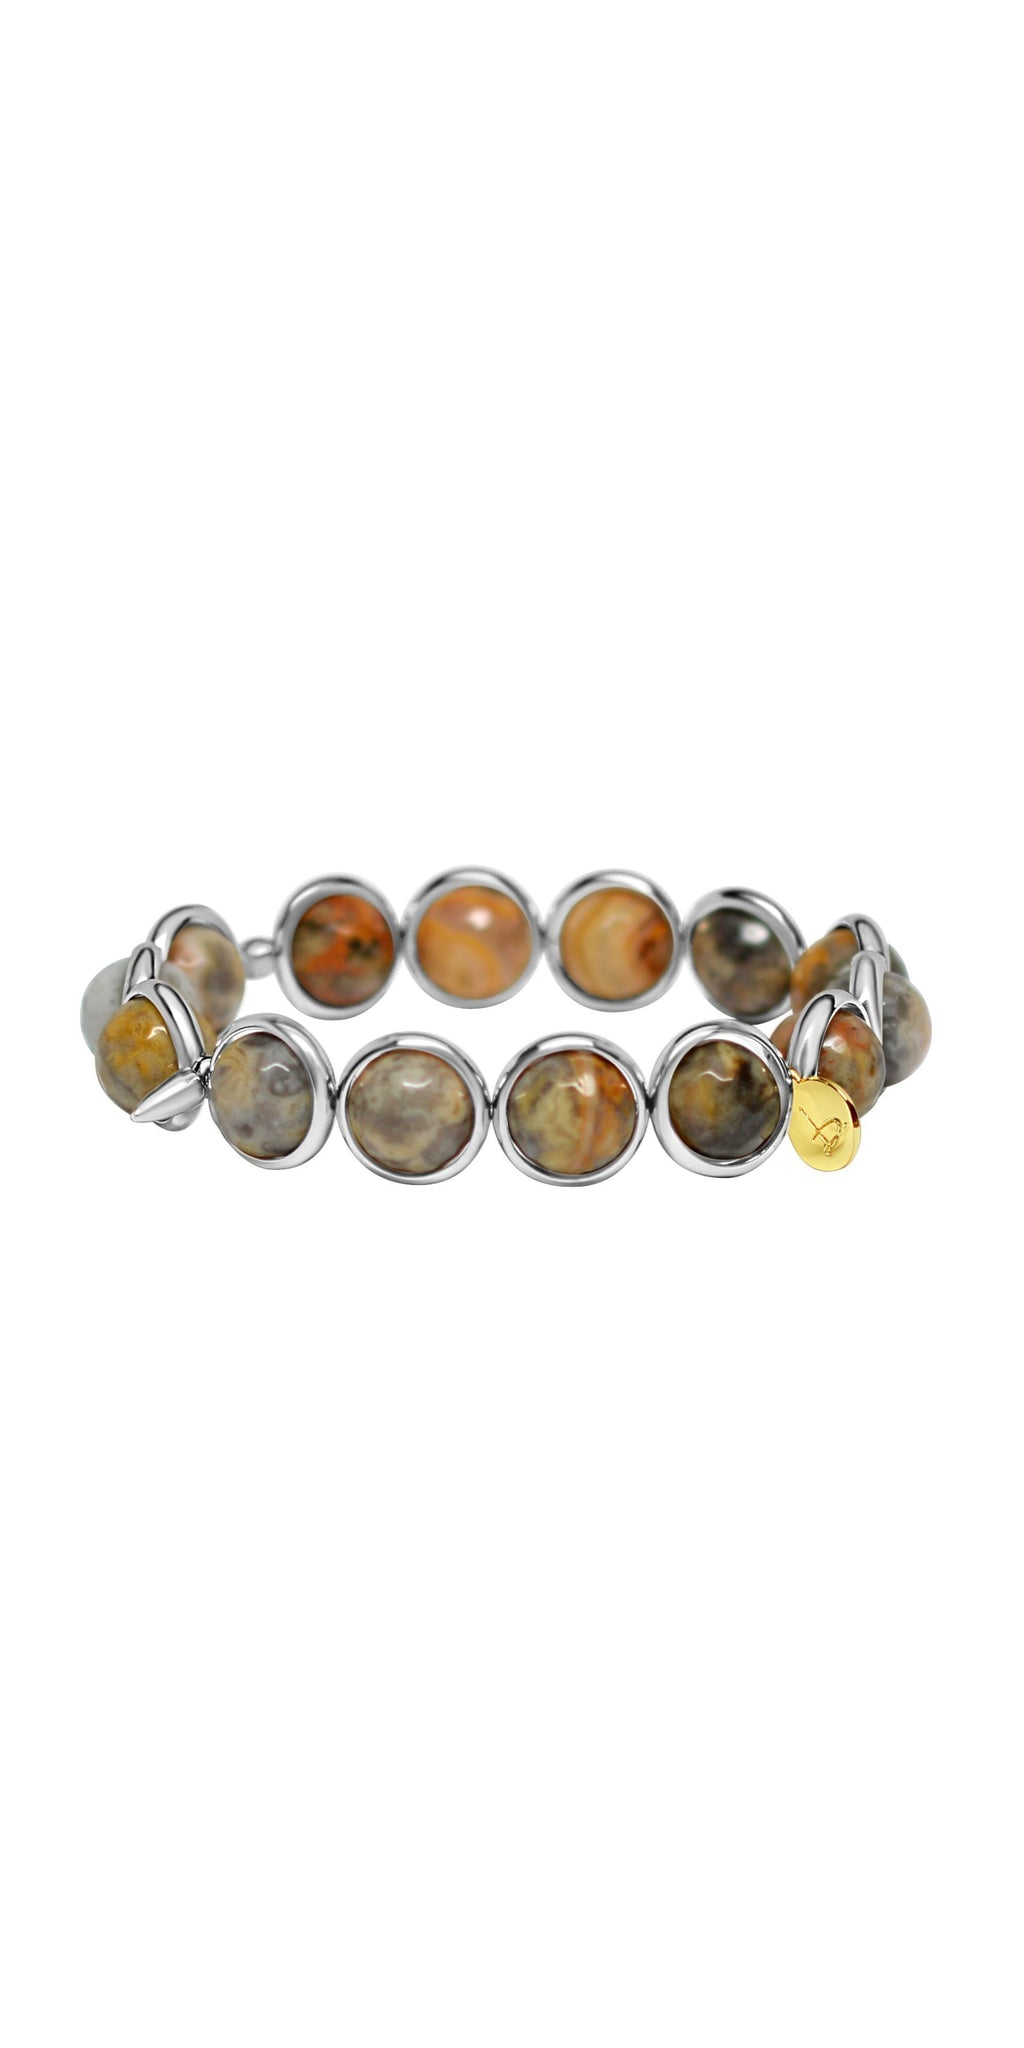 Skye Eye Jasper Bead Bracelet - Silver-Sea Biscuit Del Mar